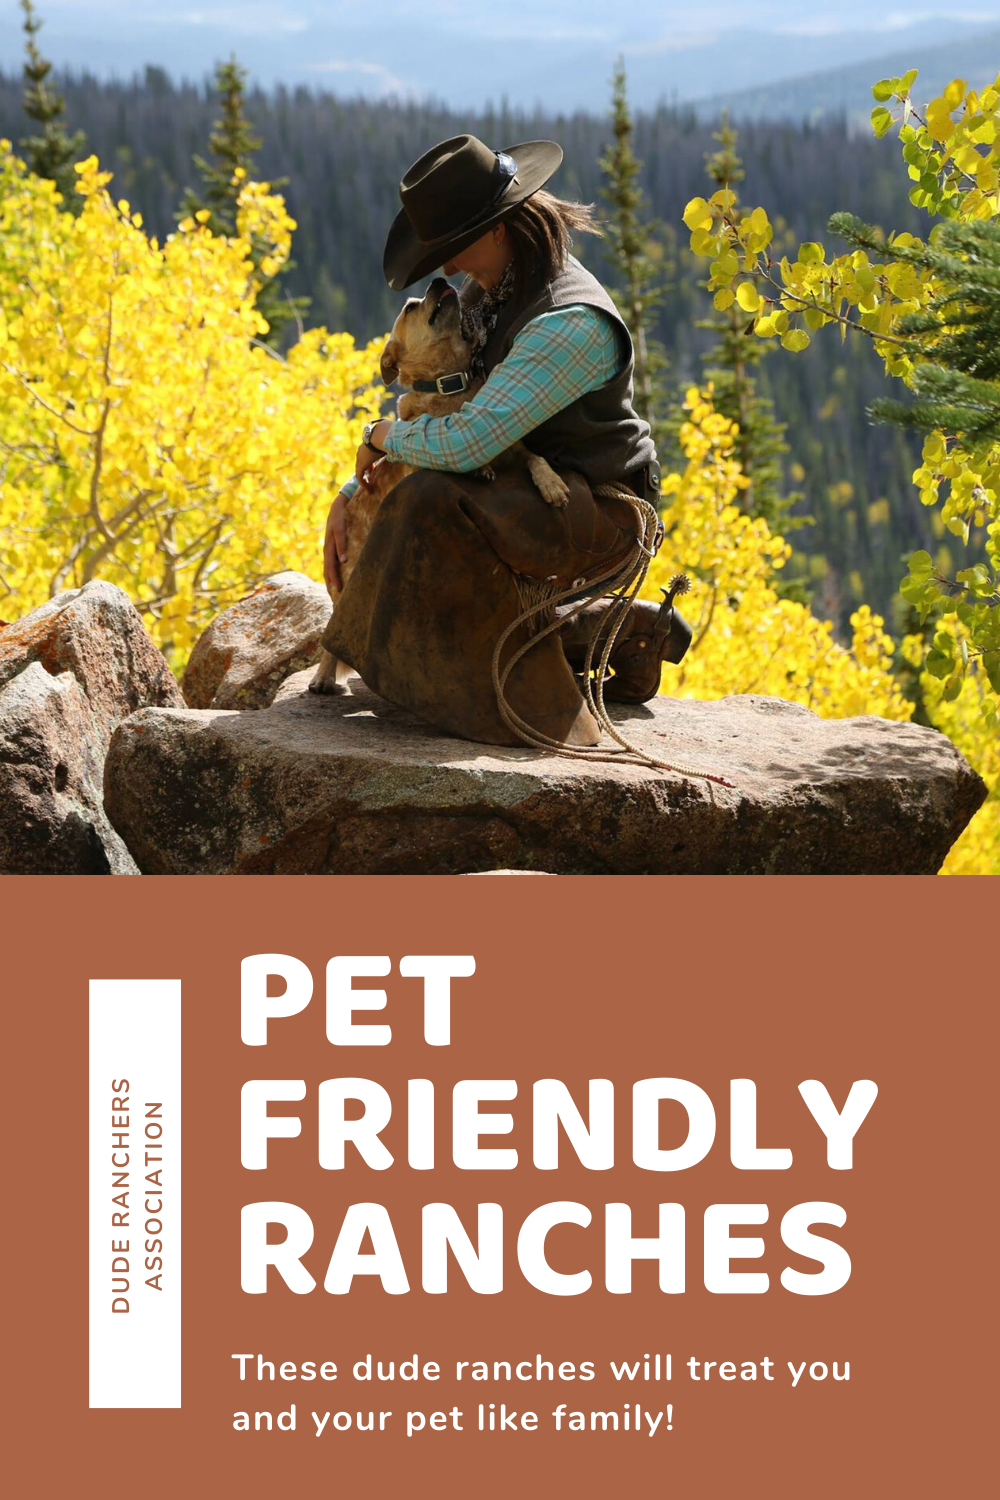 Pet Friendly Dude Ranches